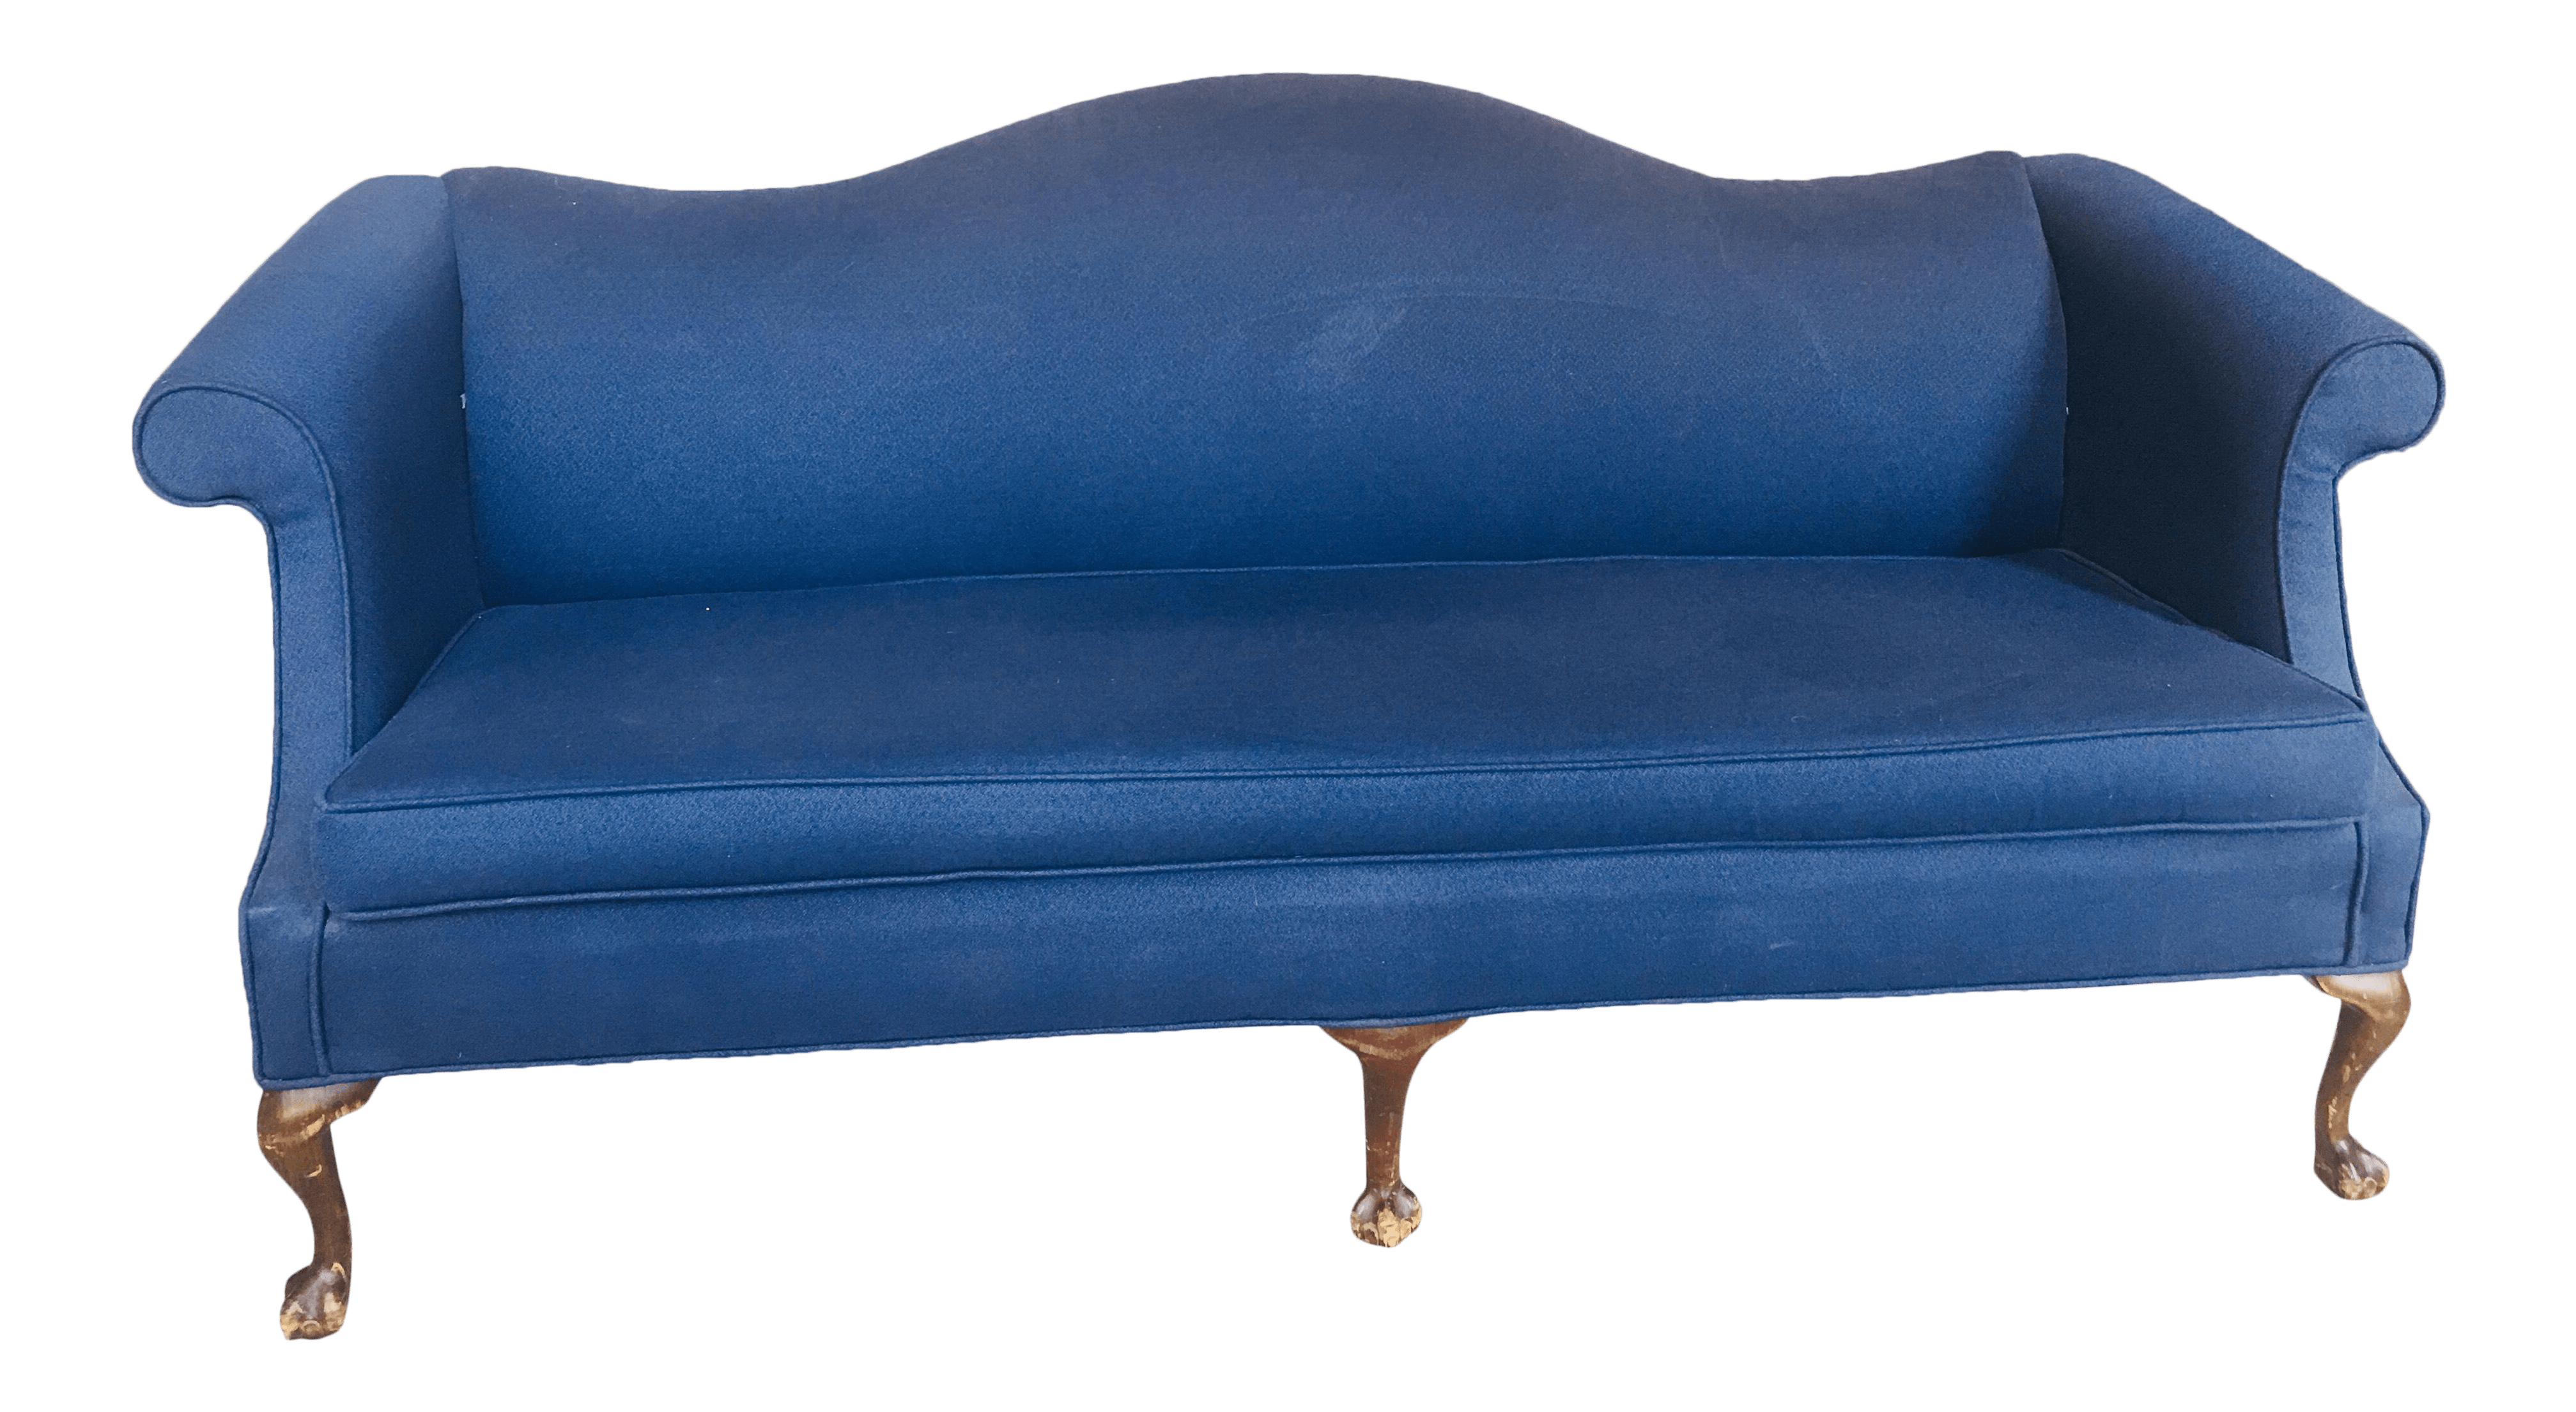 Sofa Queen Anne Style Queen Anne Style Camelback Sofa Chairish